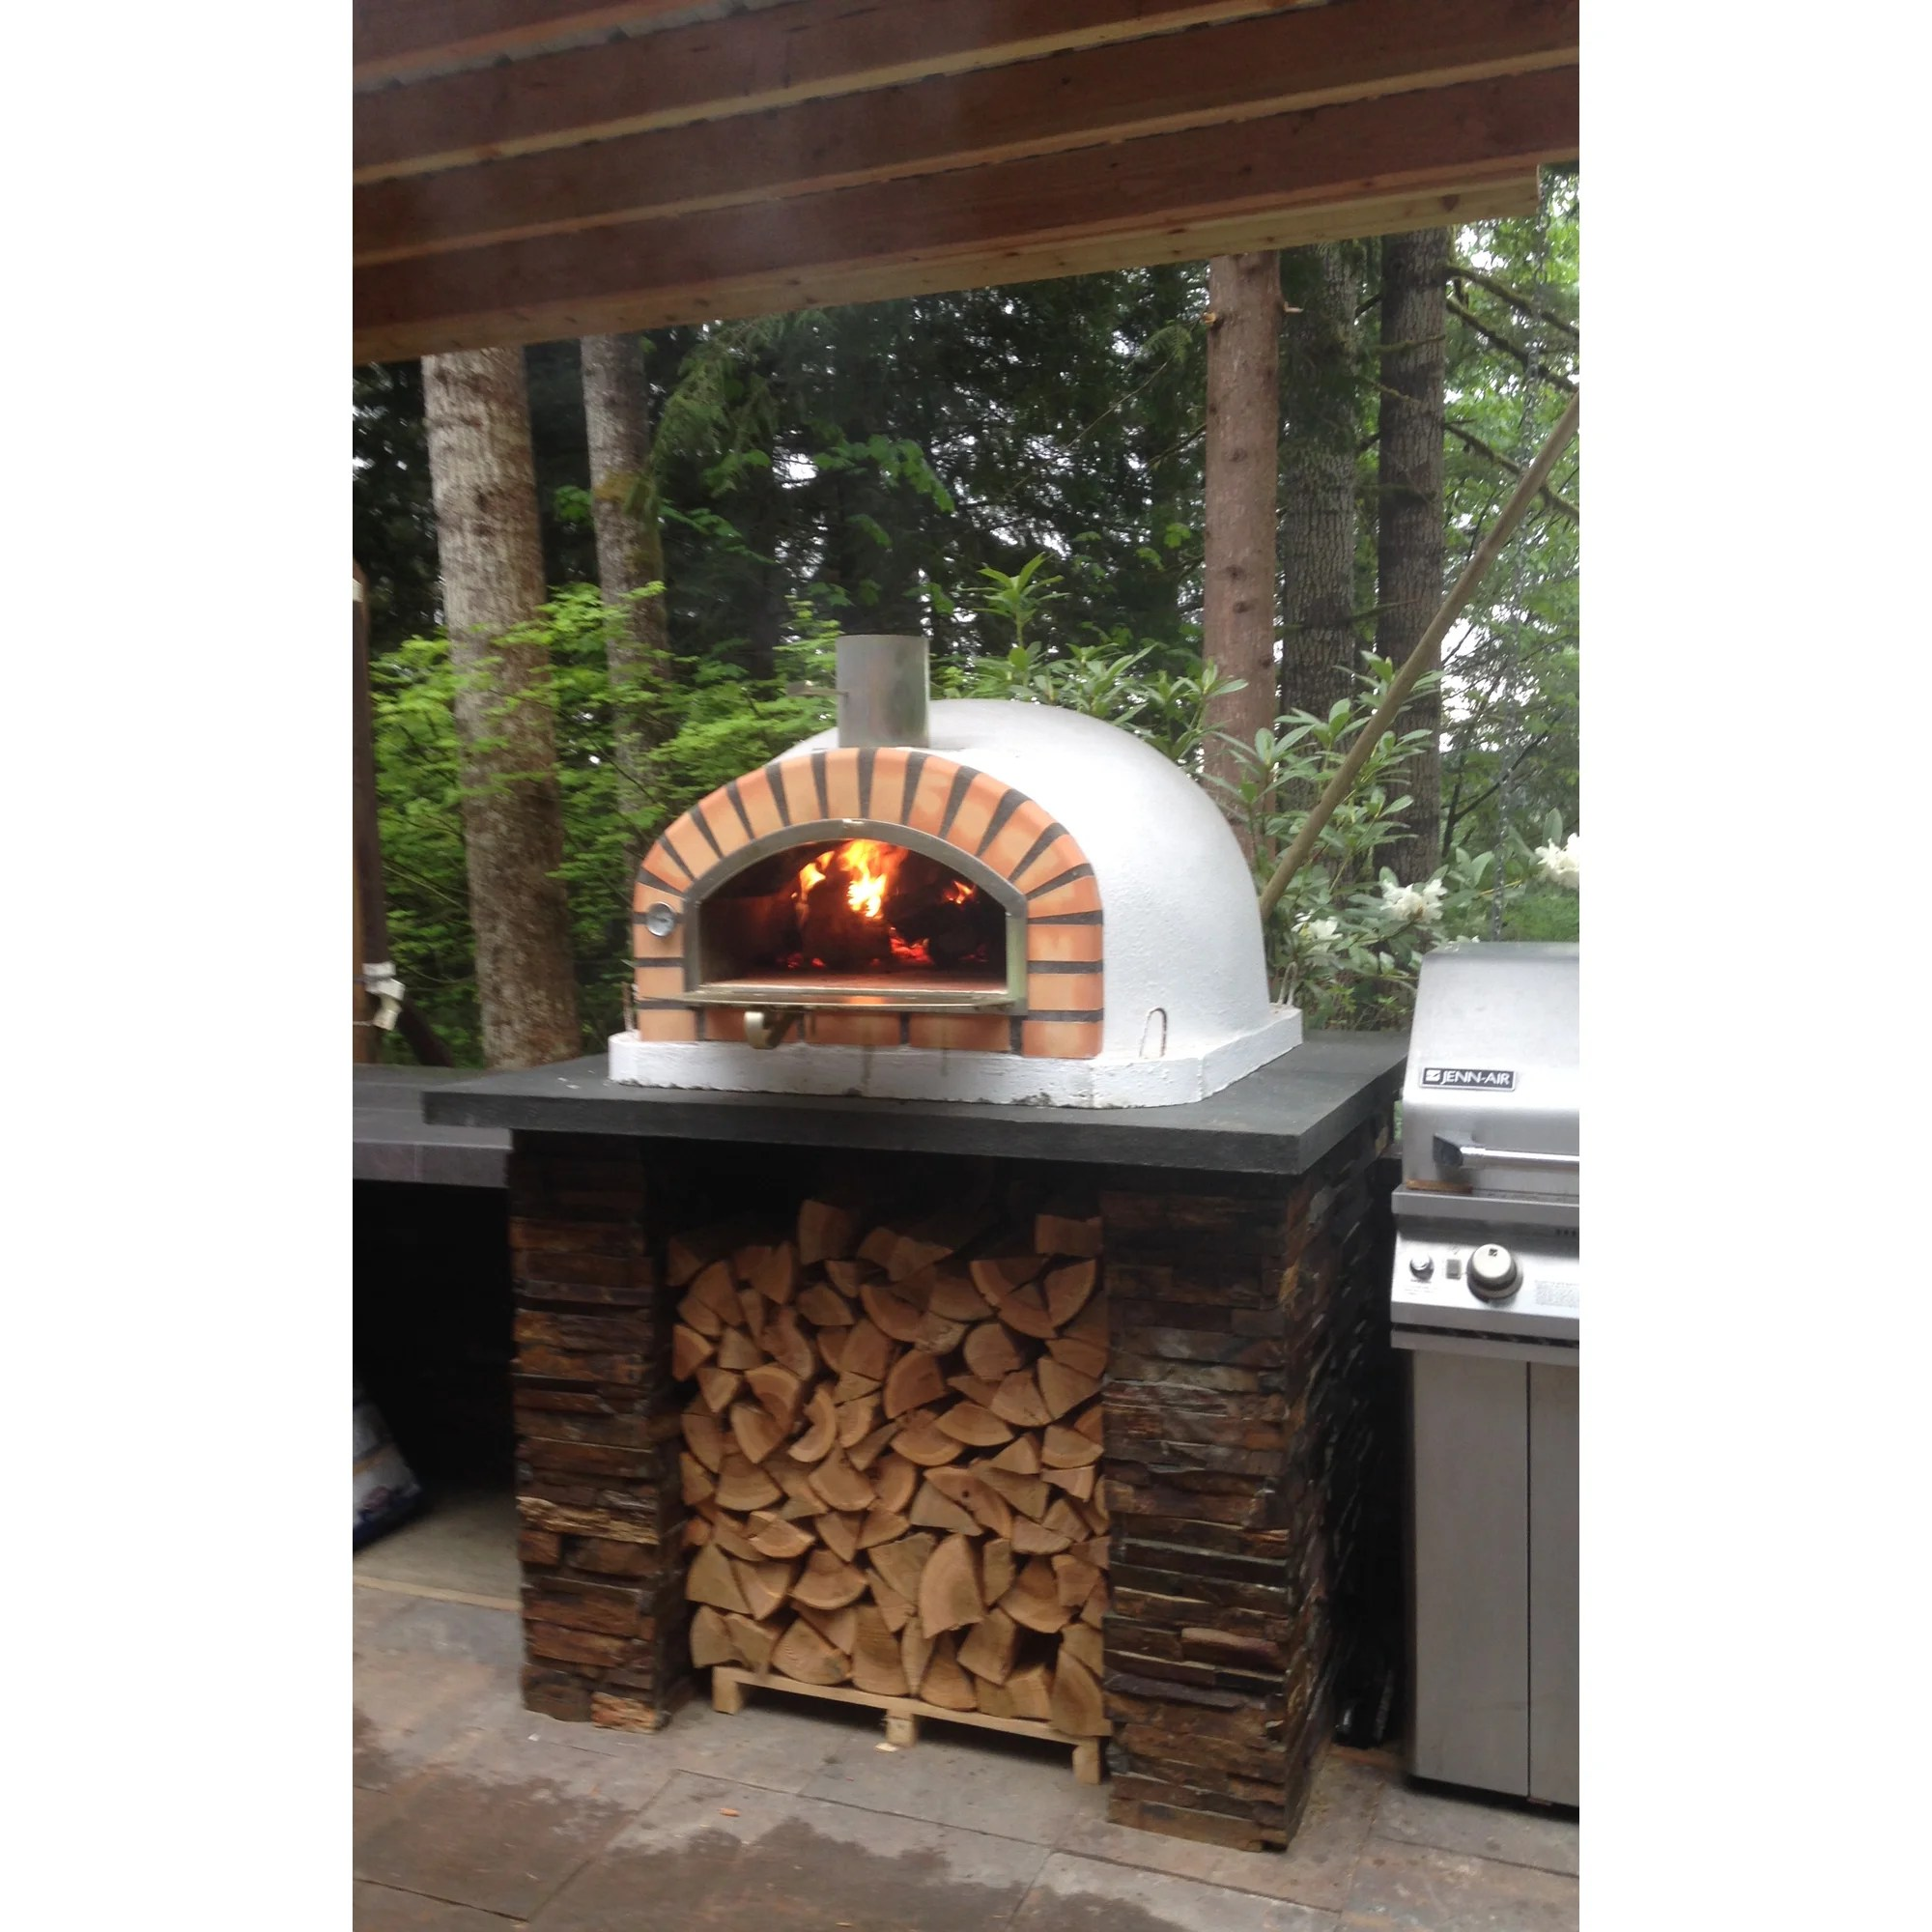 Perfect ... Blackstone Patio Oven Assembly By Patio Ideas Leader Blackstone Patio  Oven Blackstone Patio ...